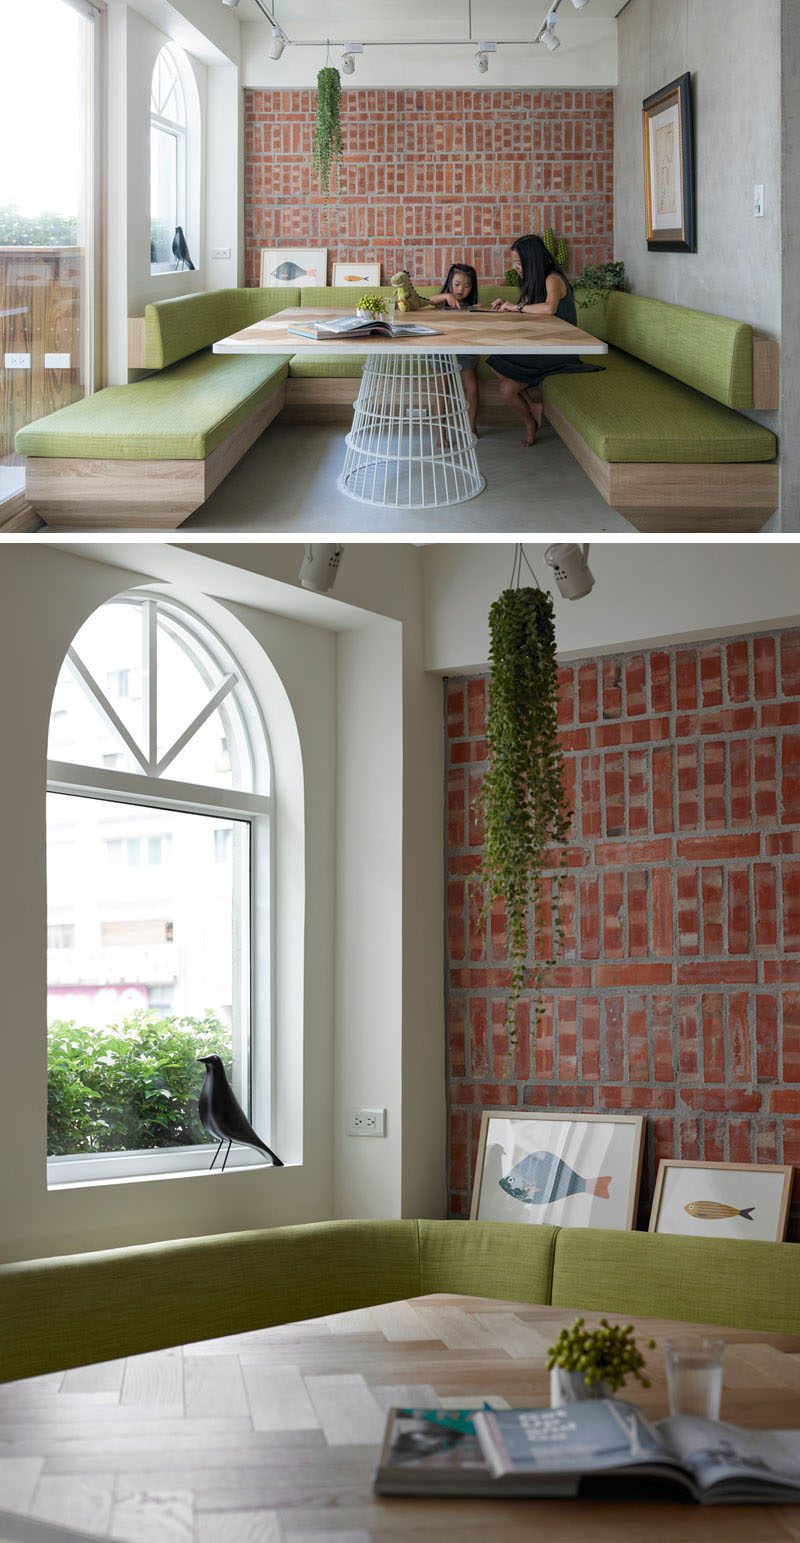 Dining Room Idea - Create A Built-In Dining Nook // Light wood and soft green cushions soften up the brick feature wall, and make this dining area a calm place to spend time eating or gathering around with friends and family.